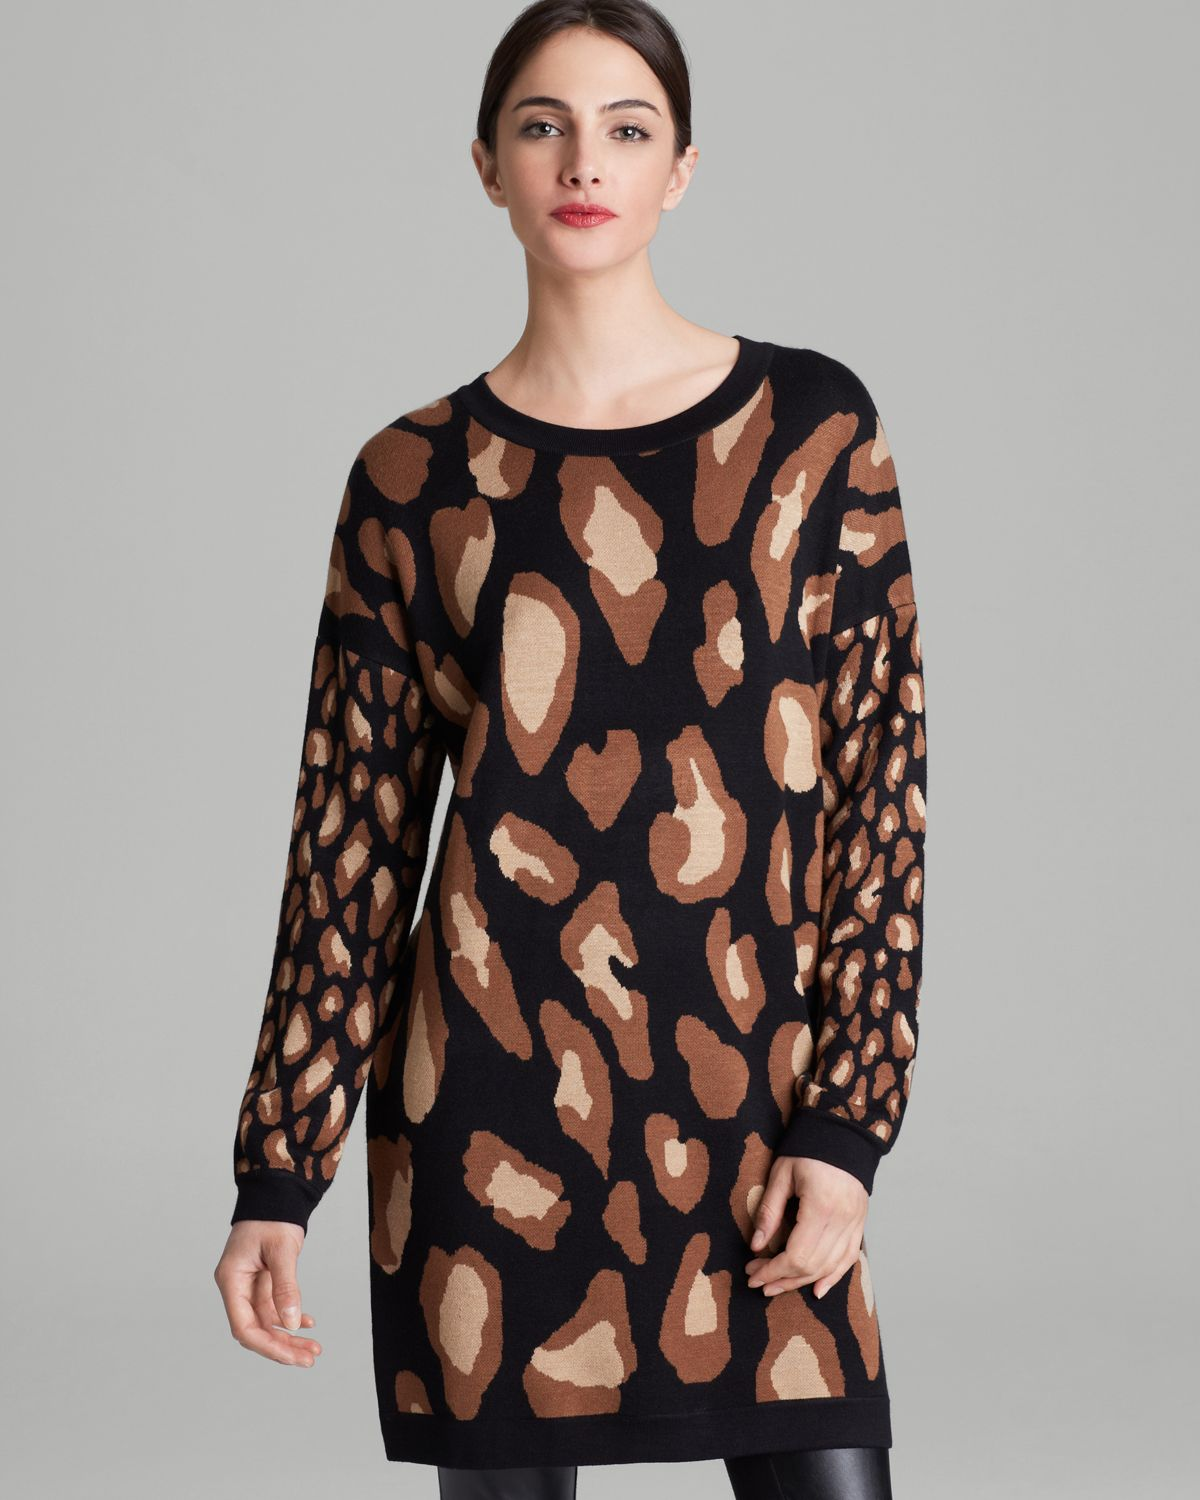 DKNY Animal Print Tunic | Bloomingdale's